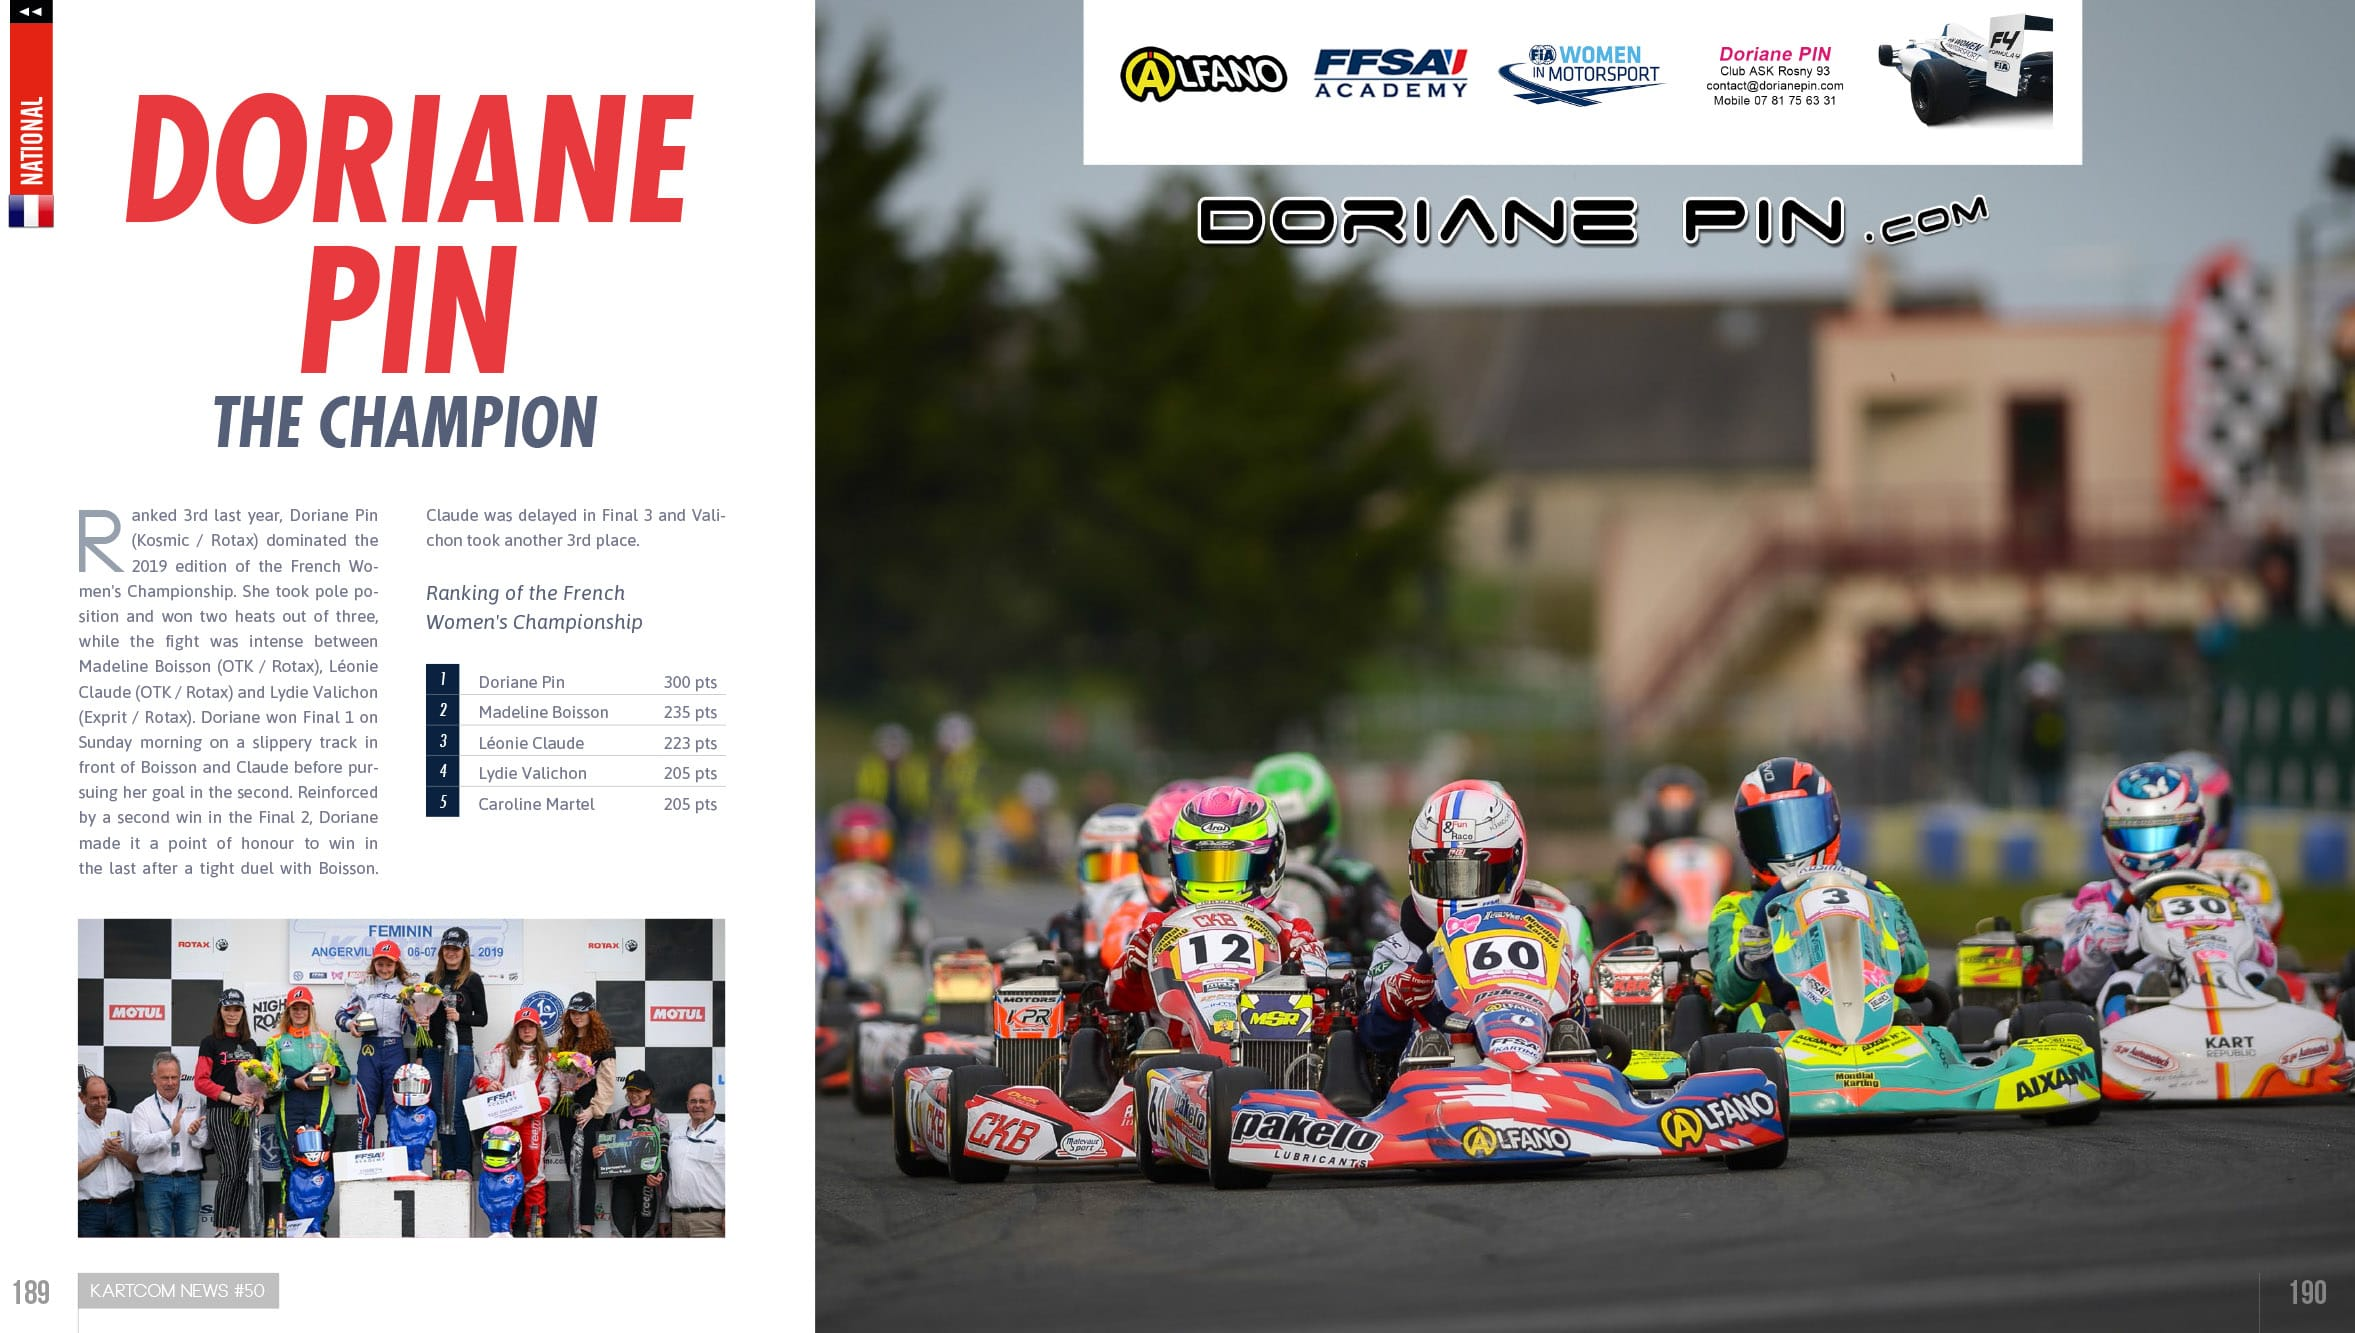 Ranked 3rd last year, Doriane Pin dominated the 2019 edition of the French Women's Championship at Angerville.